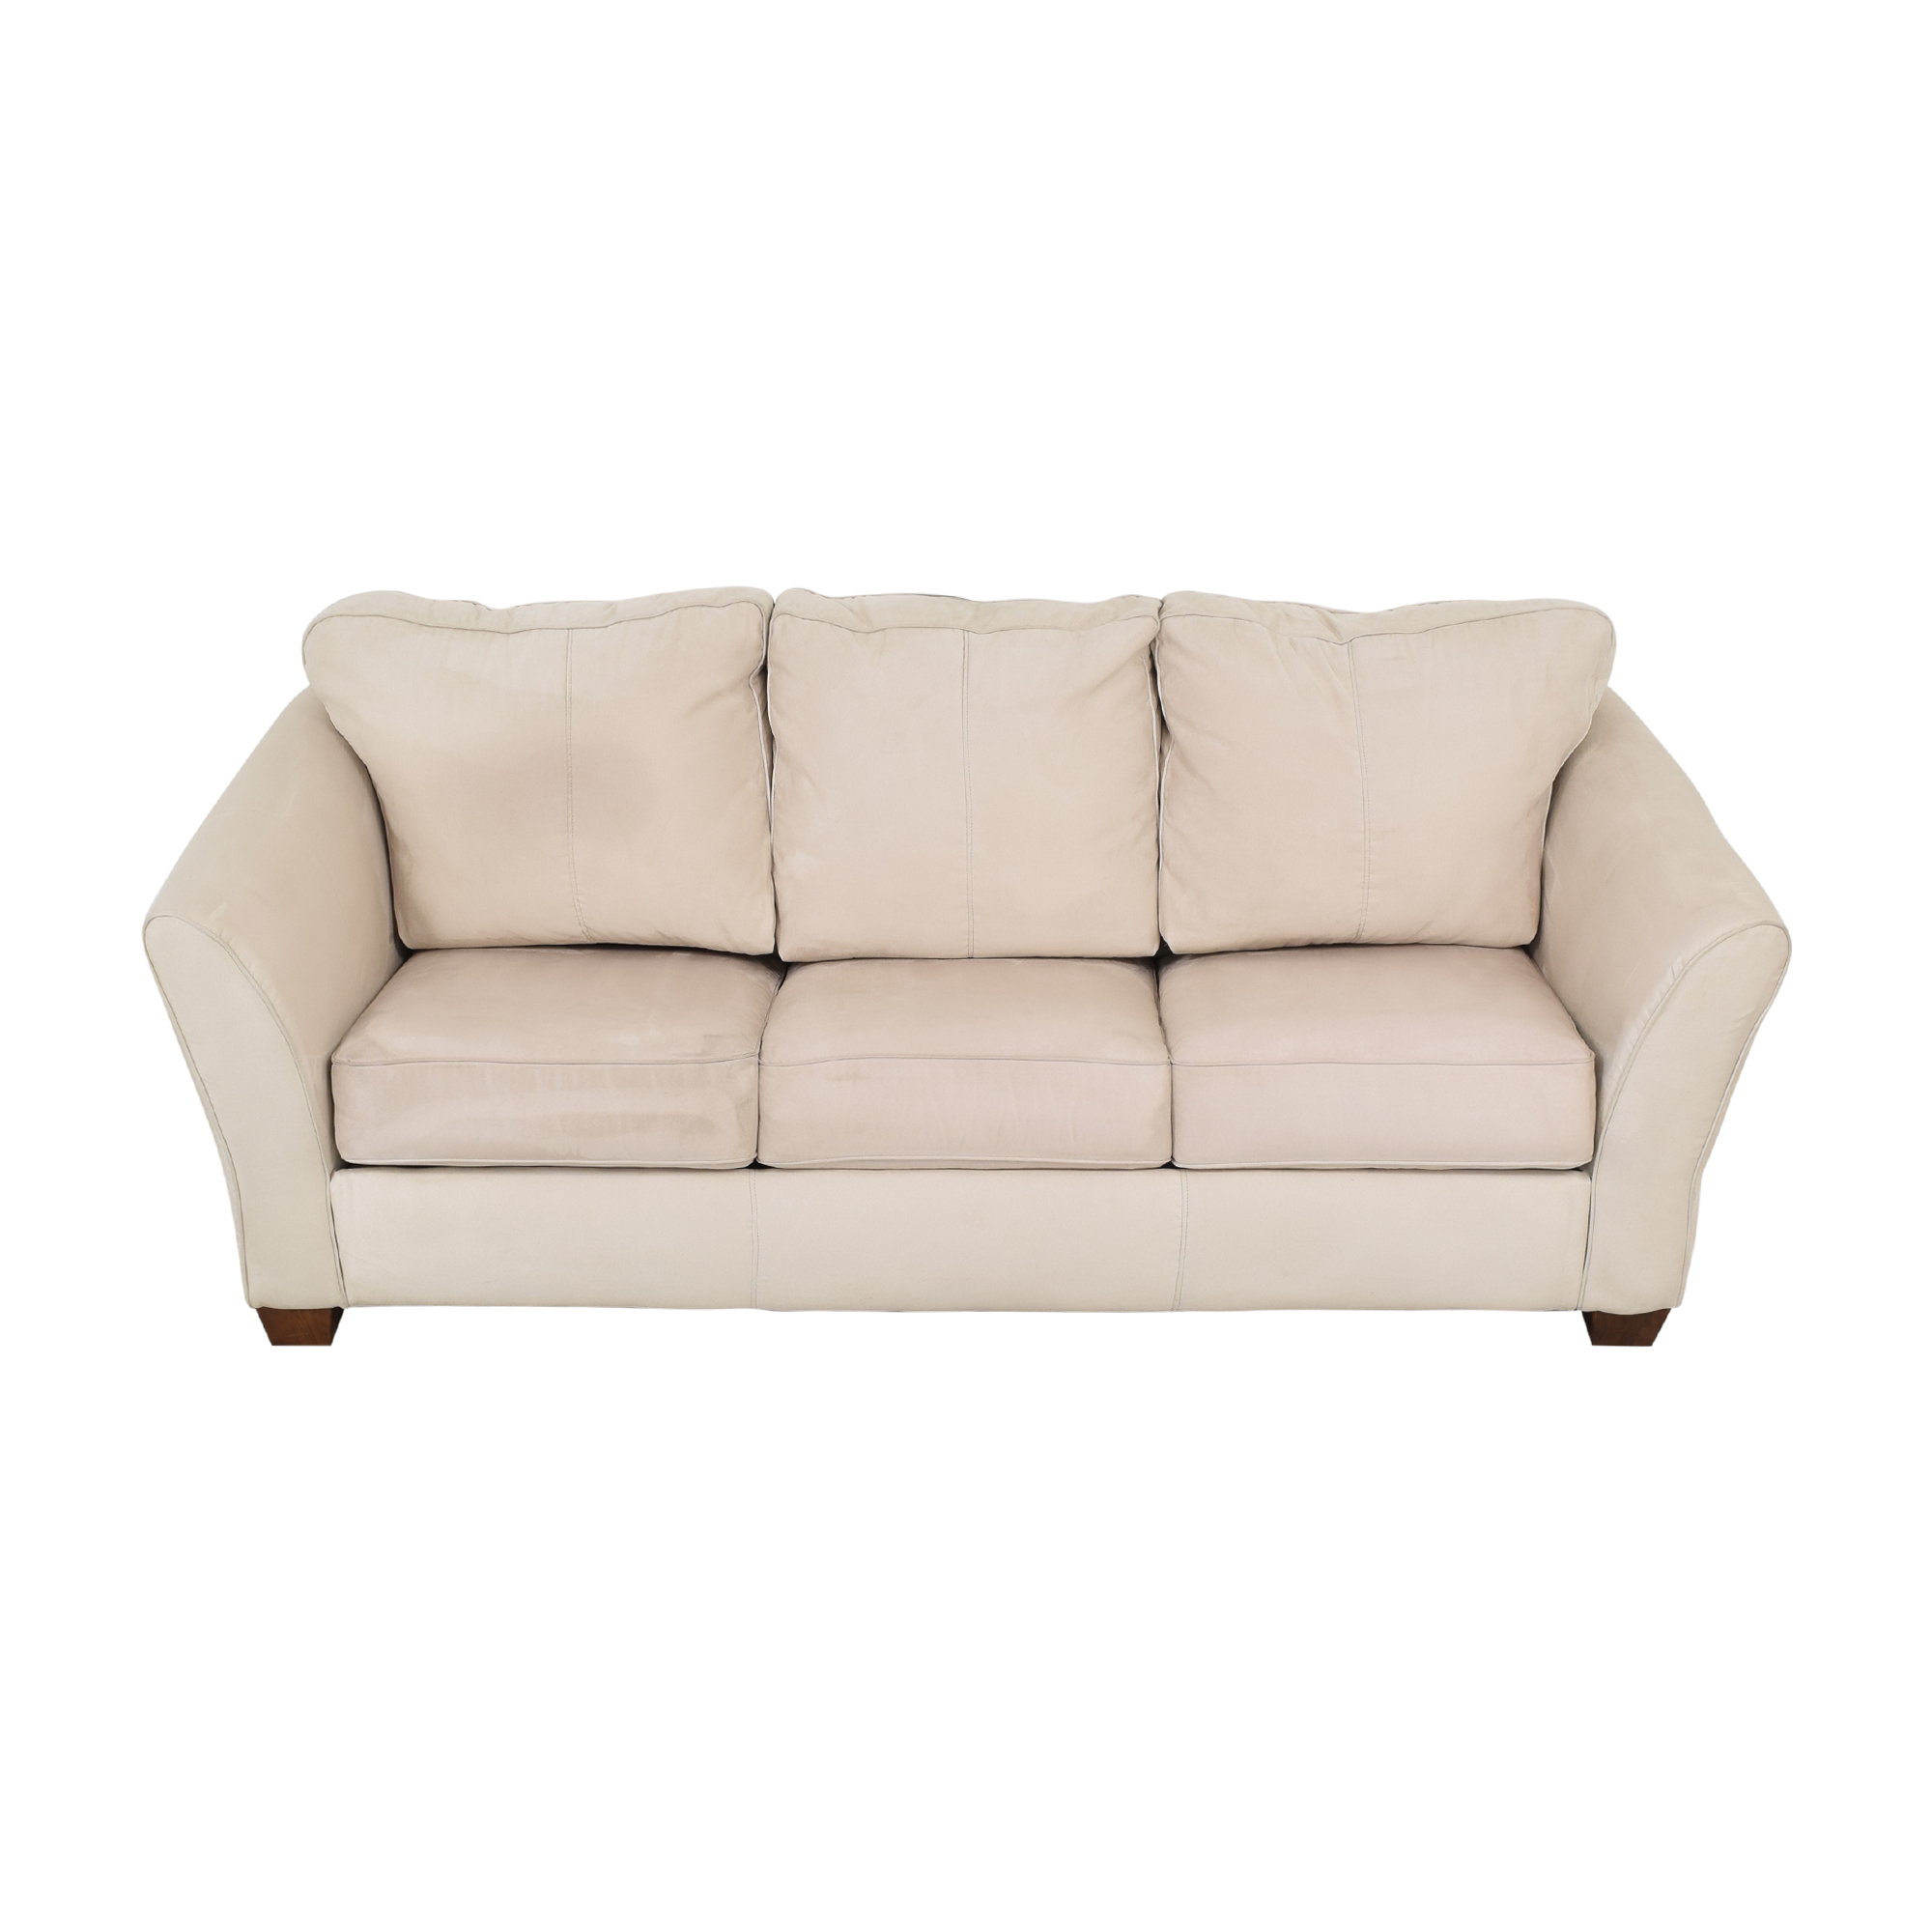 Ashley Furniture Ashley Furniture Queen Sleeper Sofa discount